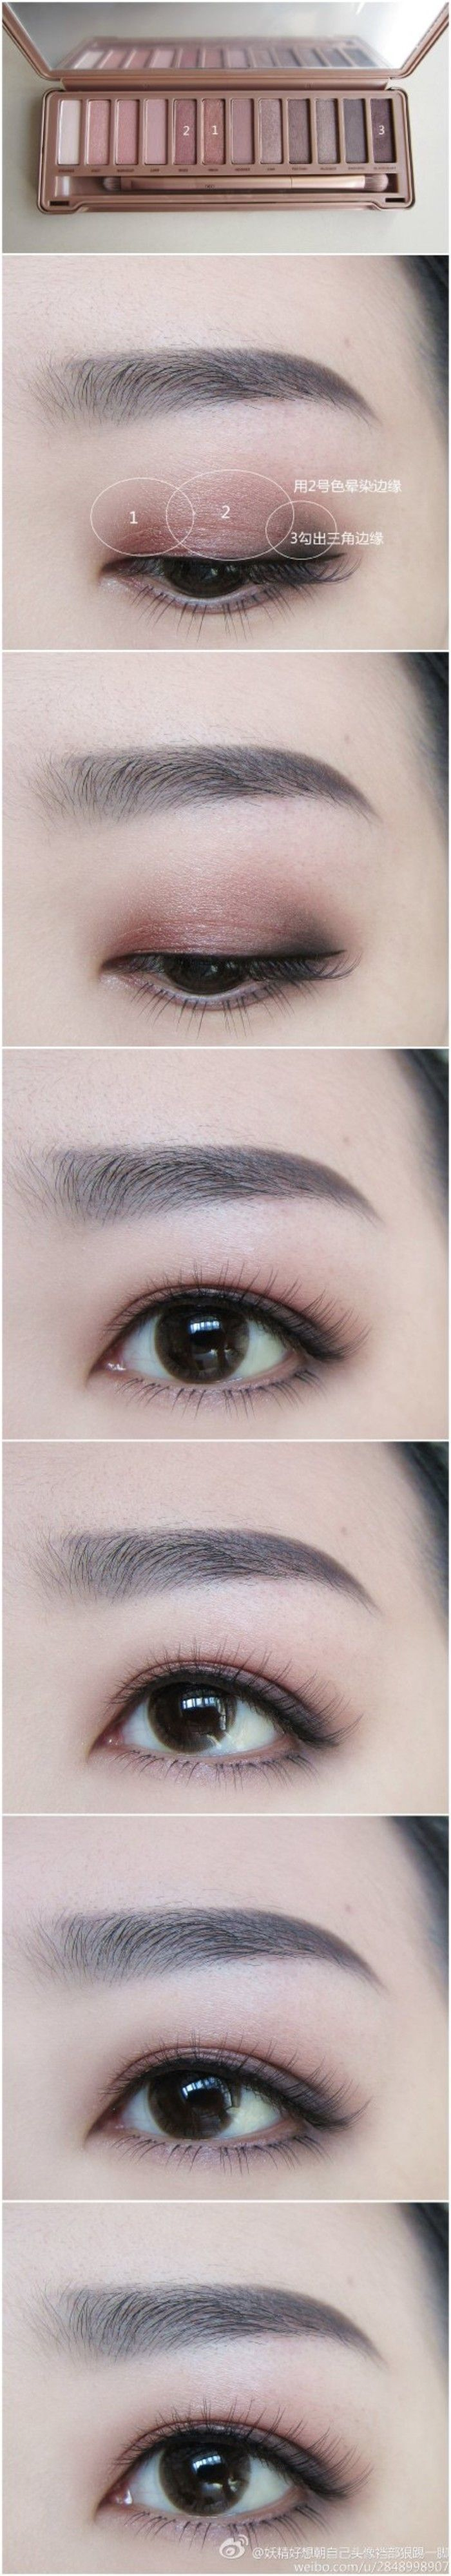 Eye make up ideas with Naked Palette 3.